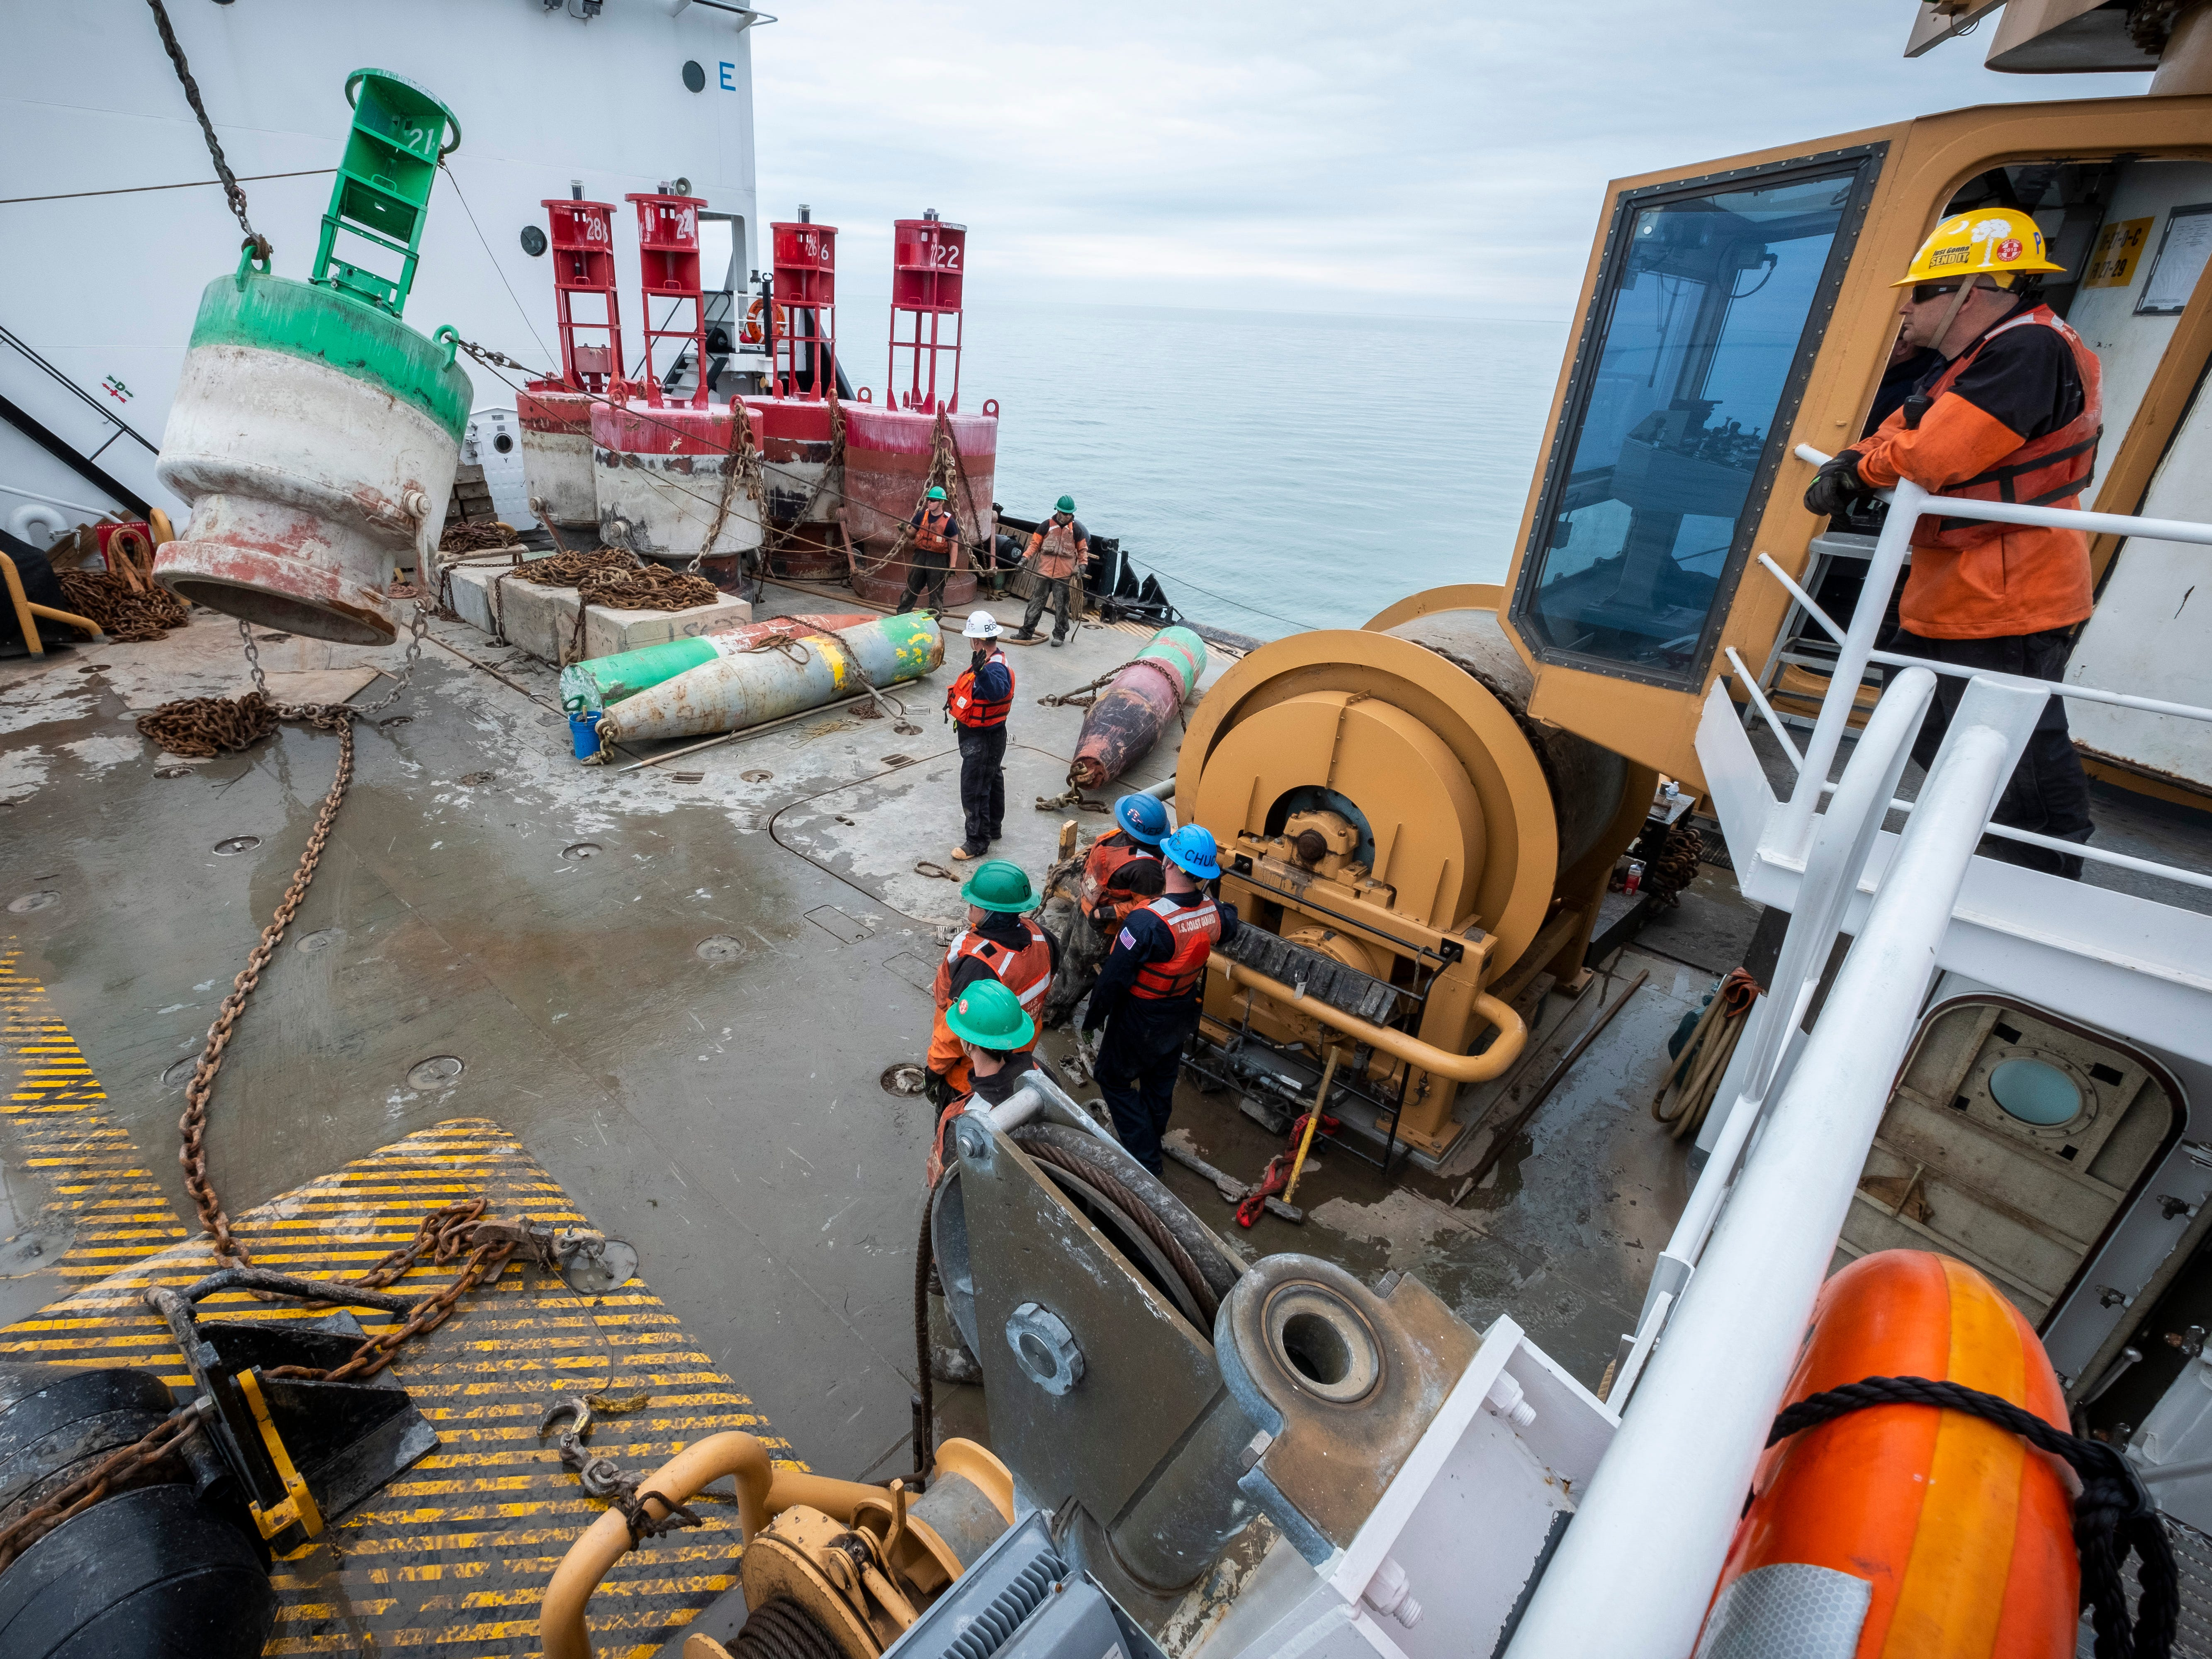 U.S. Coast Guard BMC Jeffrey Rogers, right, watches as crewmembers move a buoy off the deck of the USCGC Hollyhock Thursday, April 25, 2019. From his position on the forward deck, BMC Rogers watches to ensure the crew is operating safely while working with the bridge to obtain permission to move buoys and stones.